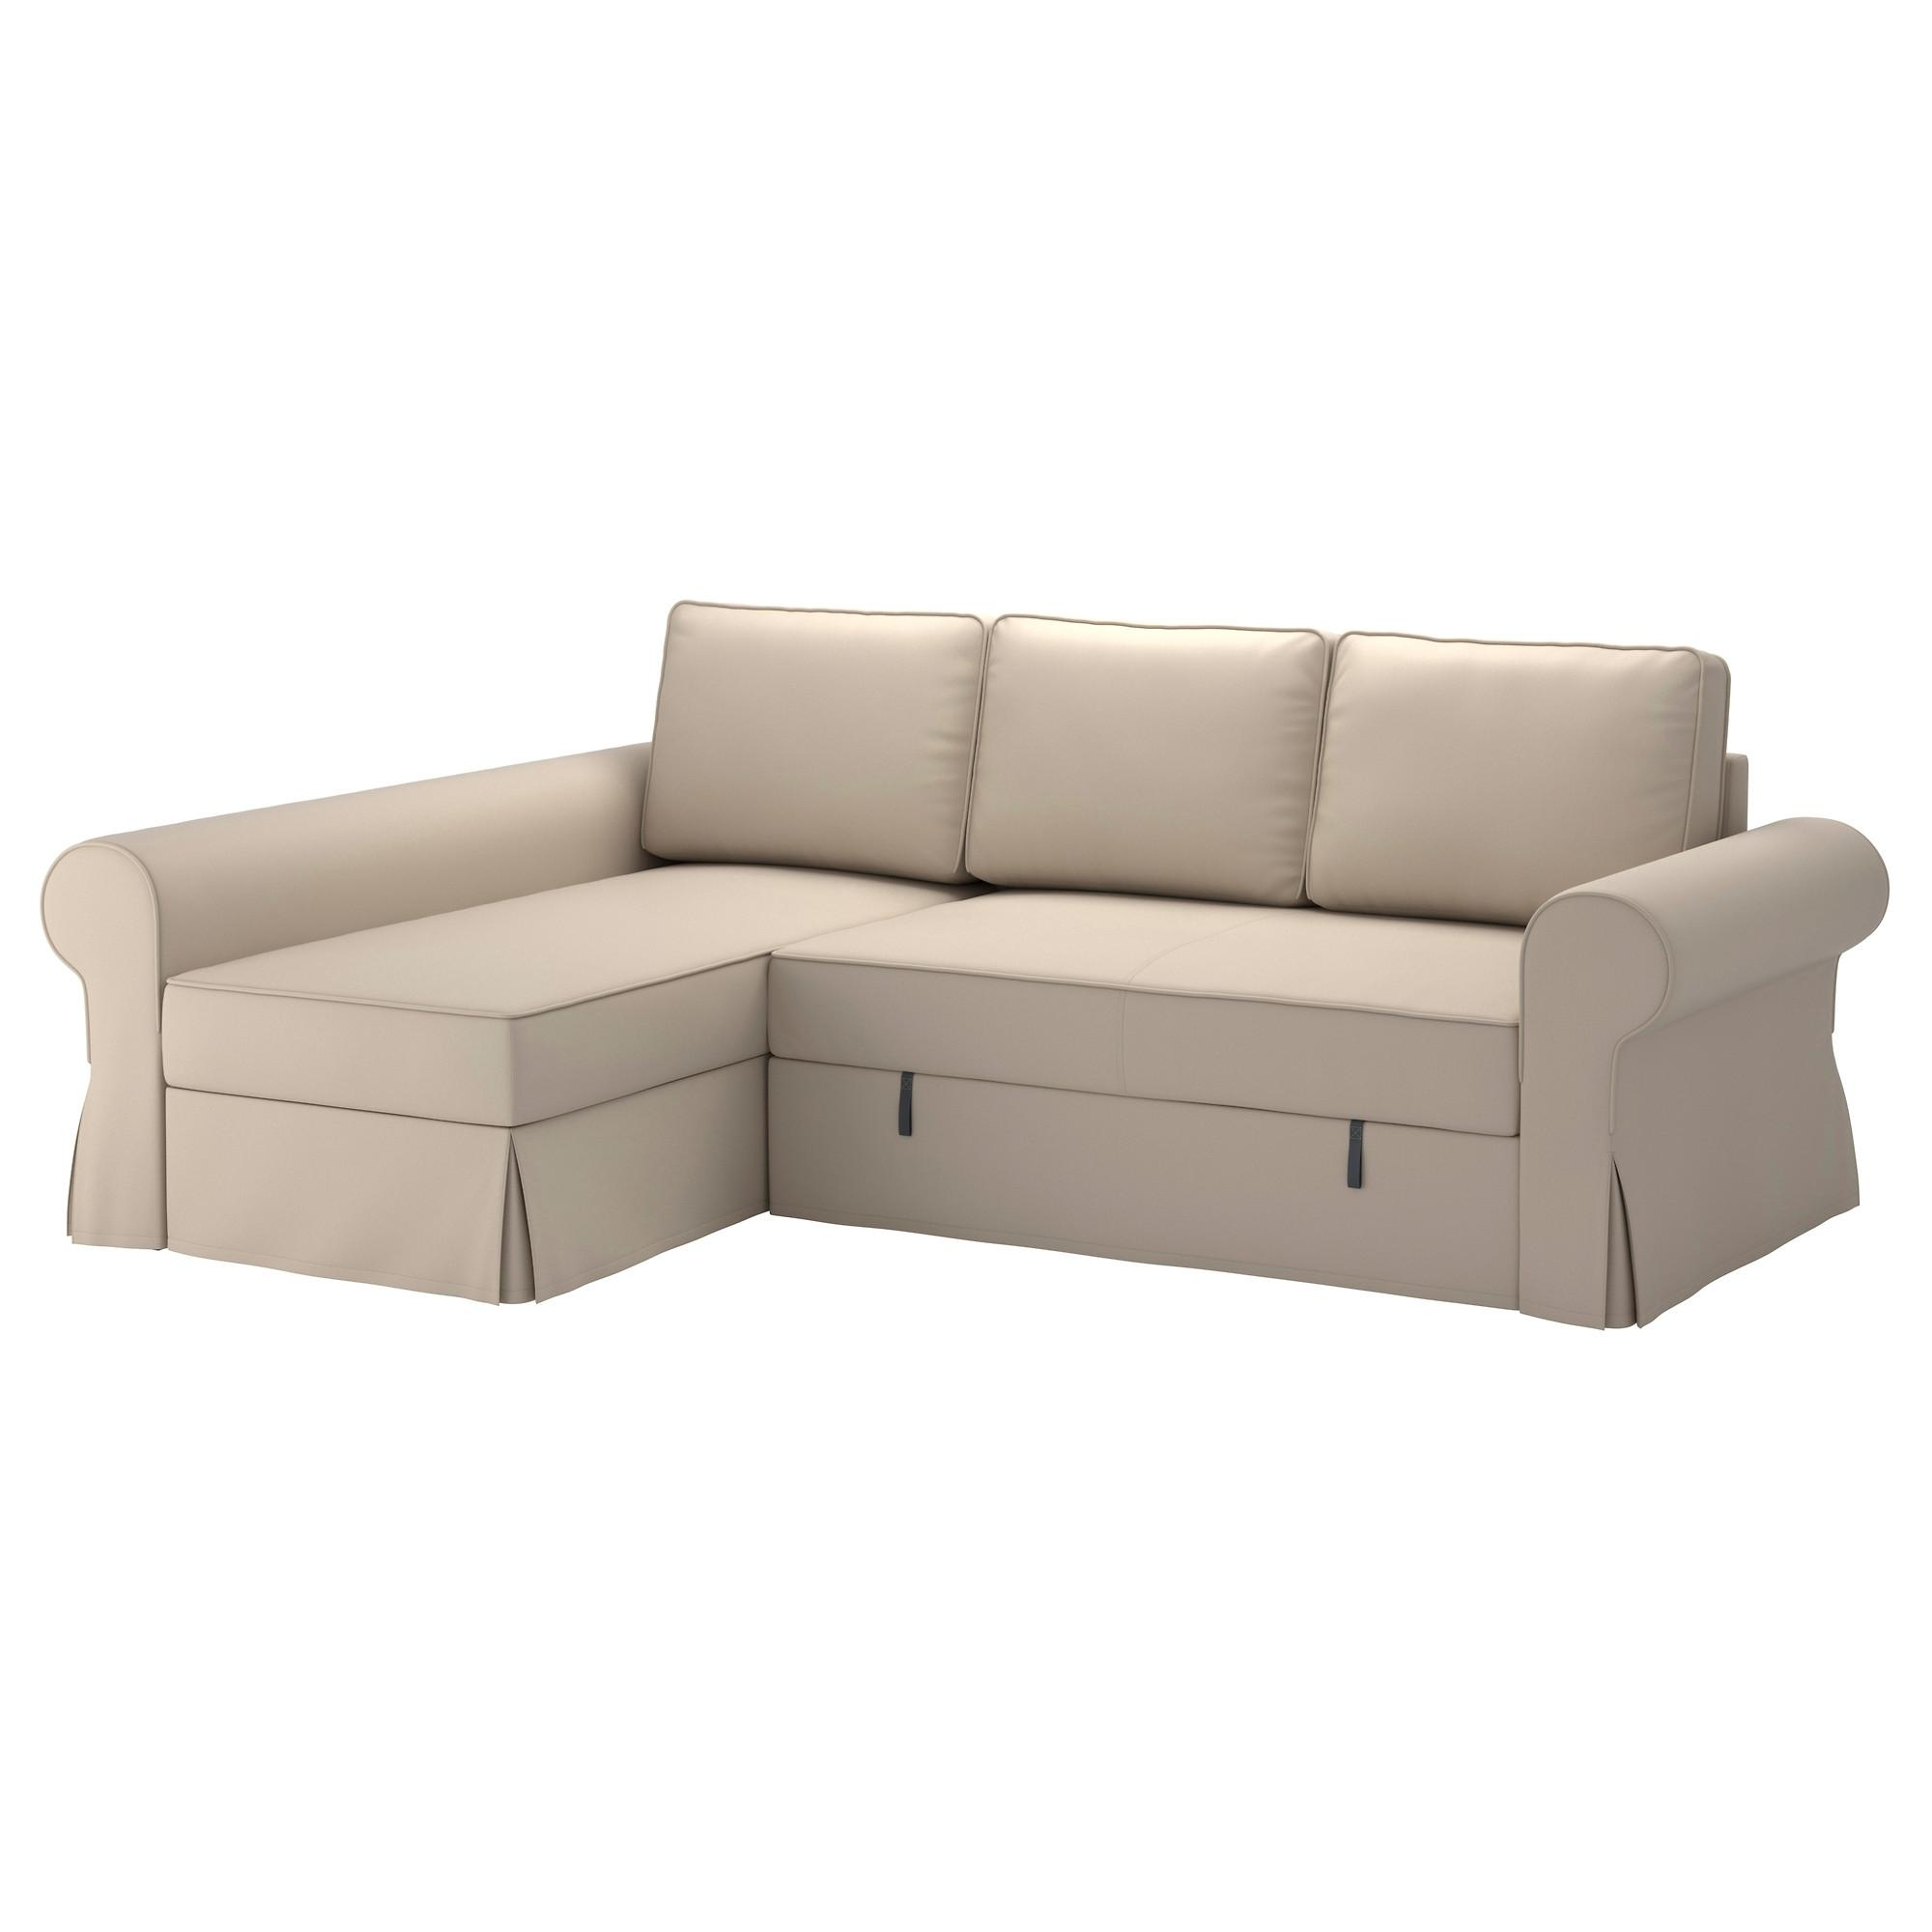 20 best ideas chaise longue sofa beds sofa ideas - Sofa rinconera con chaise longue ...